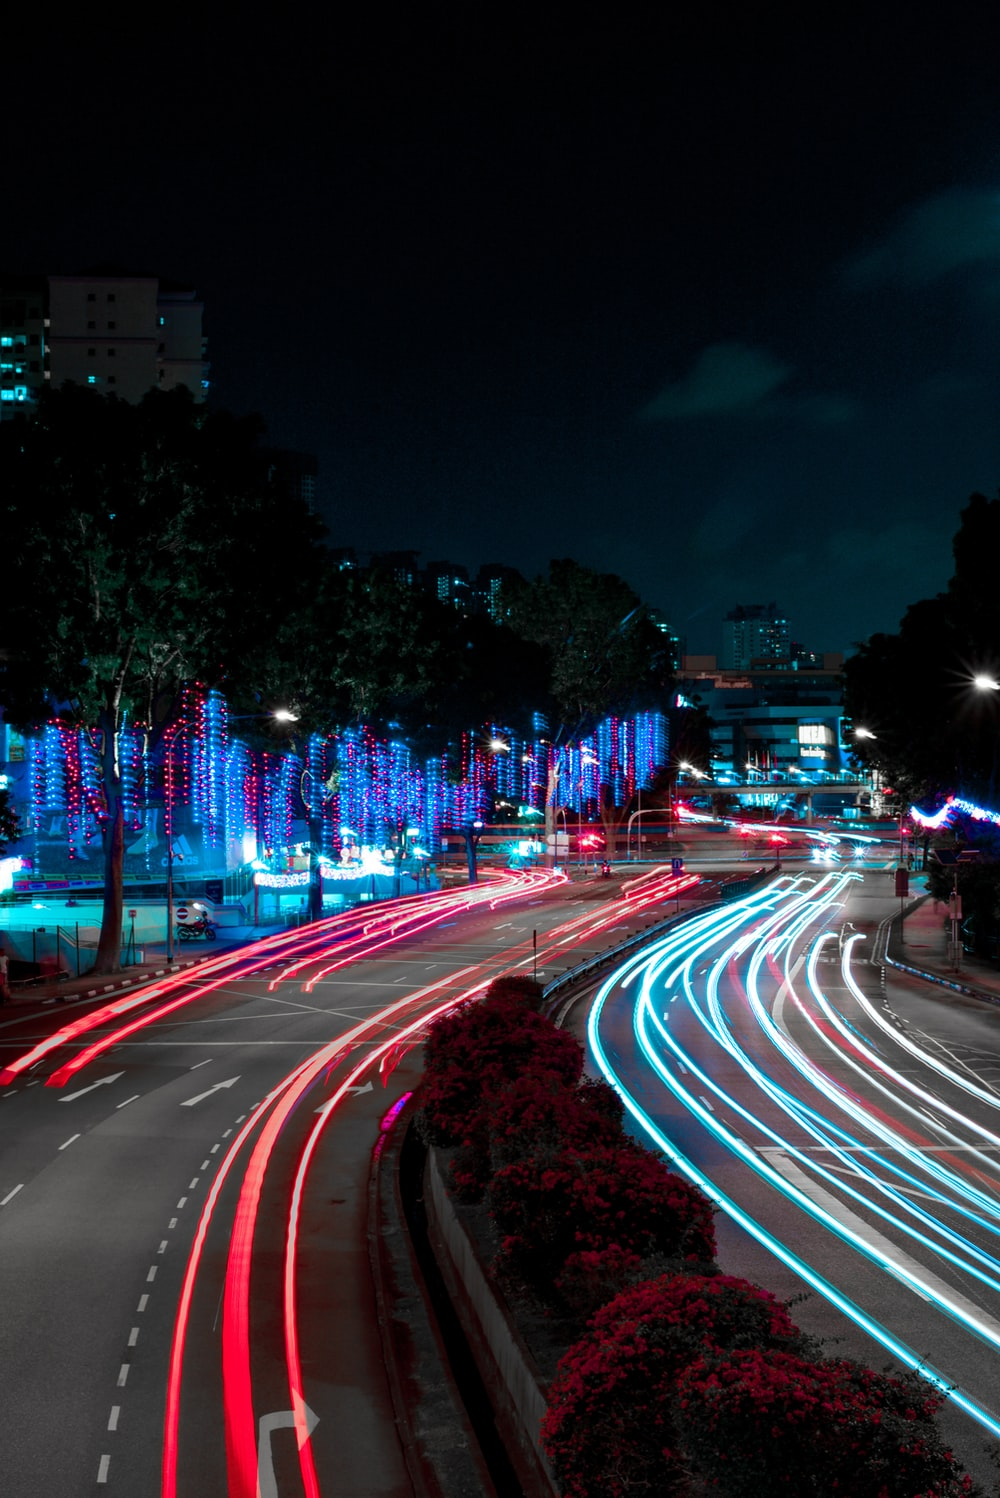 time-lapse photo of lights on street